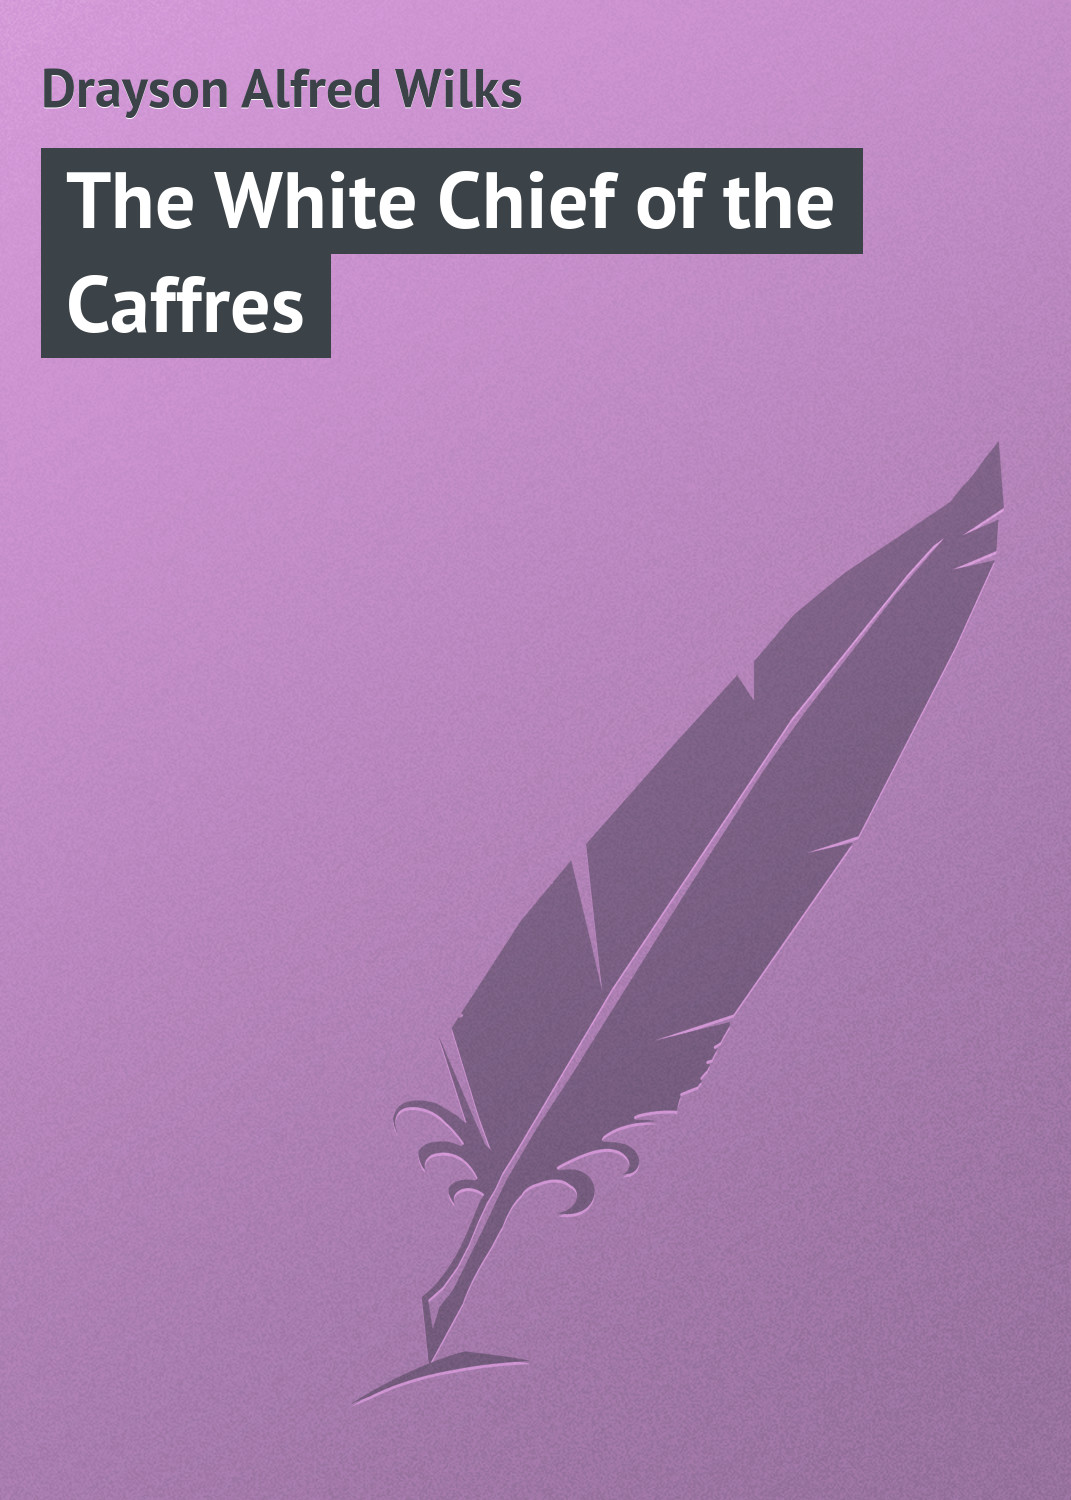 цены Drayson Alfred Wilks The White Chief of the Caffres